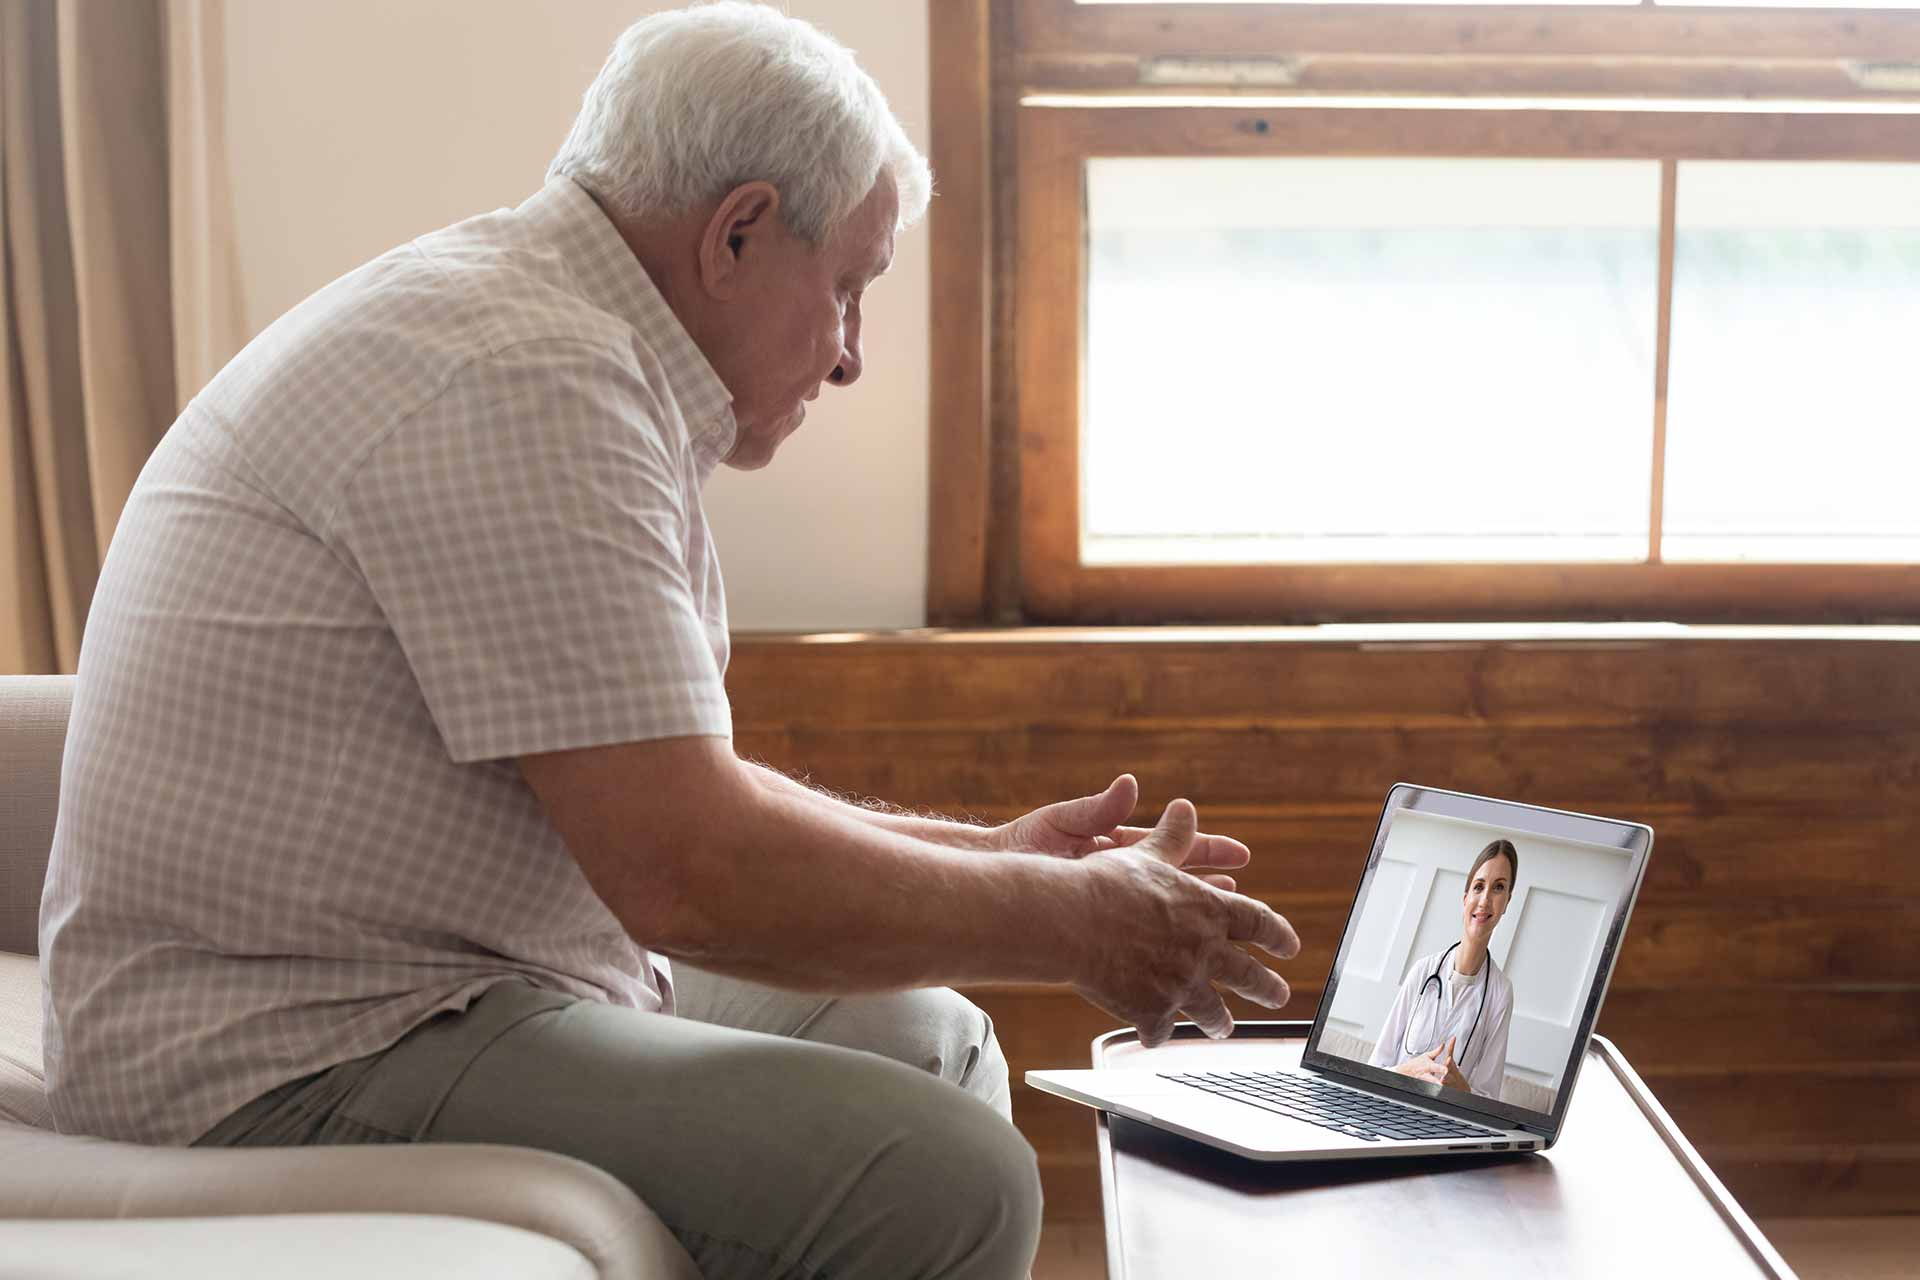 How Telemedicine Can Help You With Your Healthcare